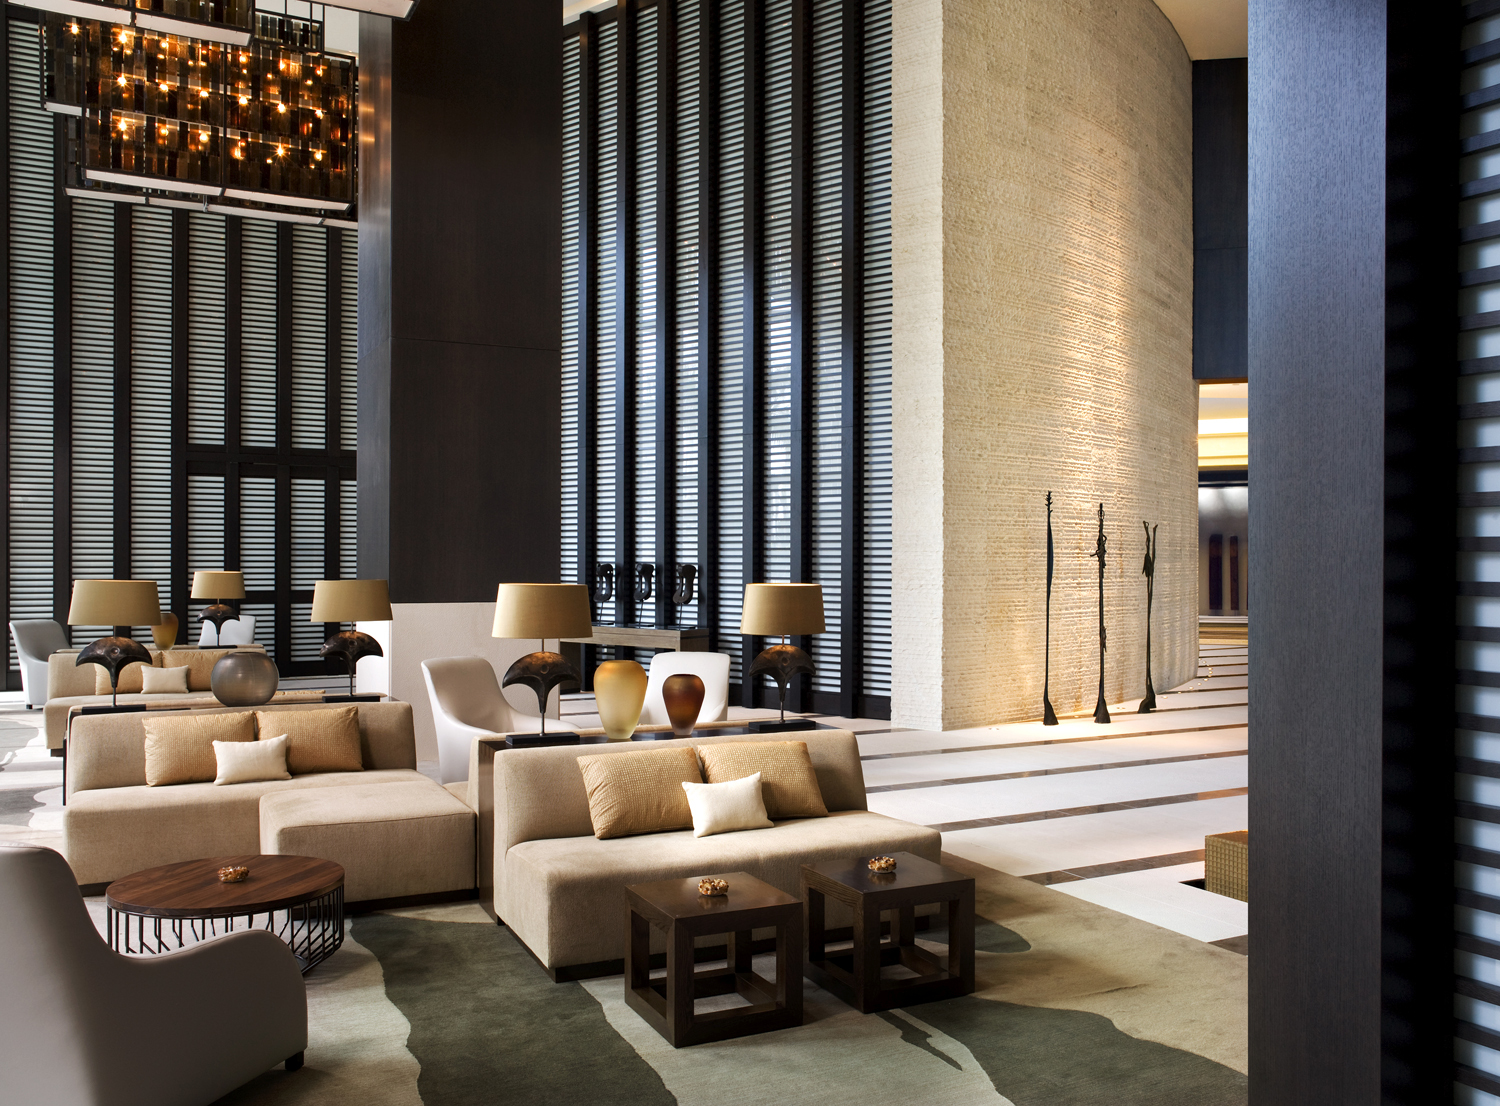 Trendy design and sophistication. The lobby of Miami's Kimpton EPIC hotel.